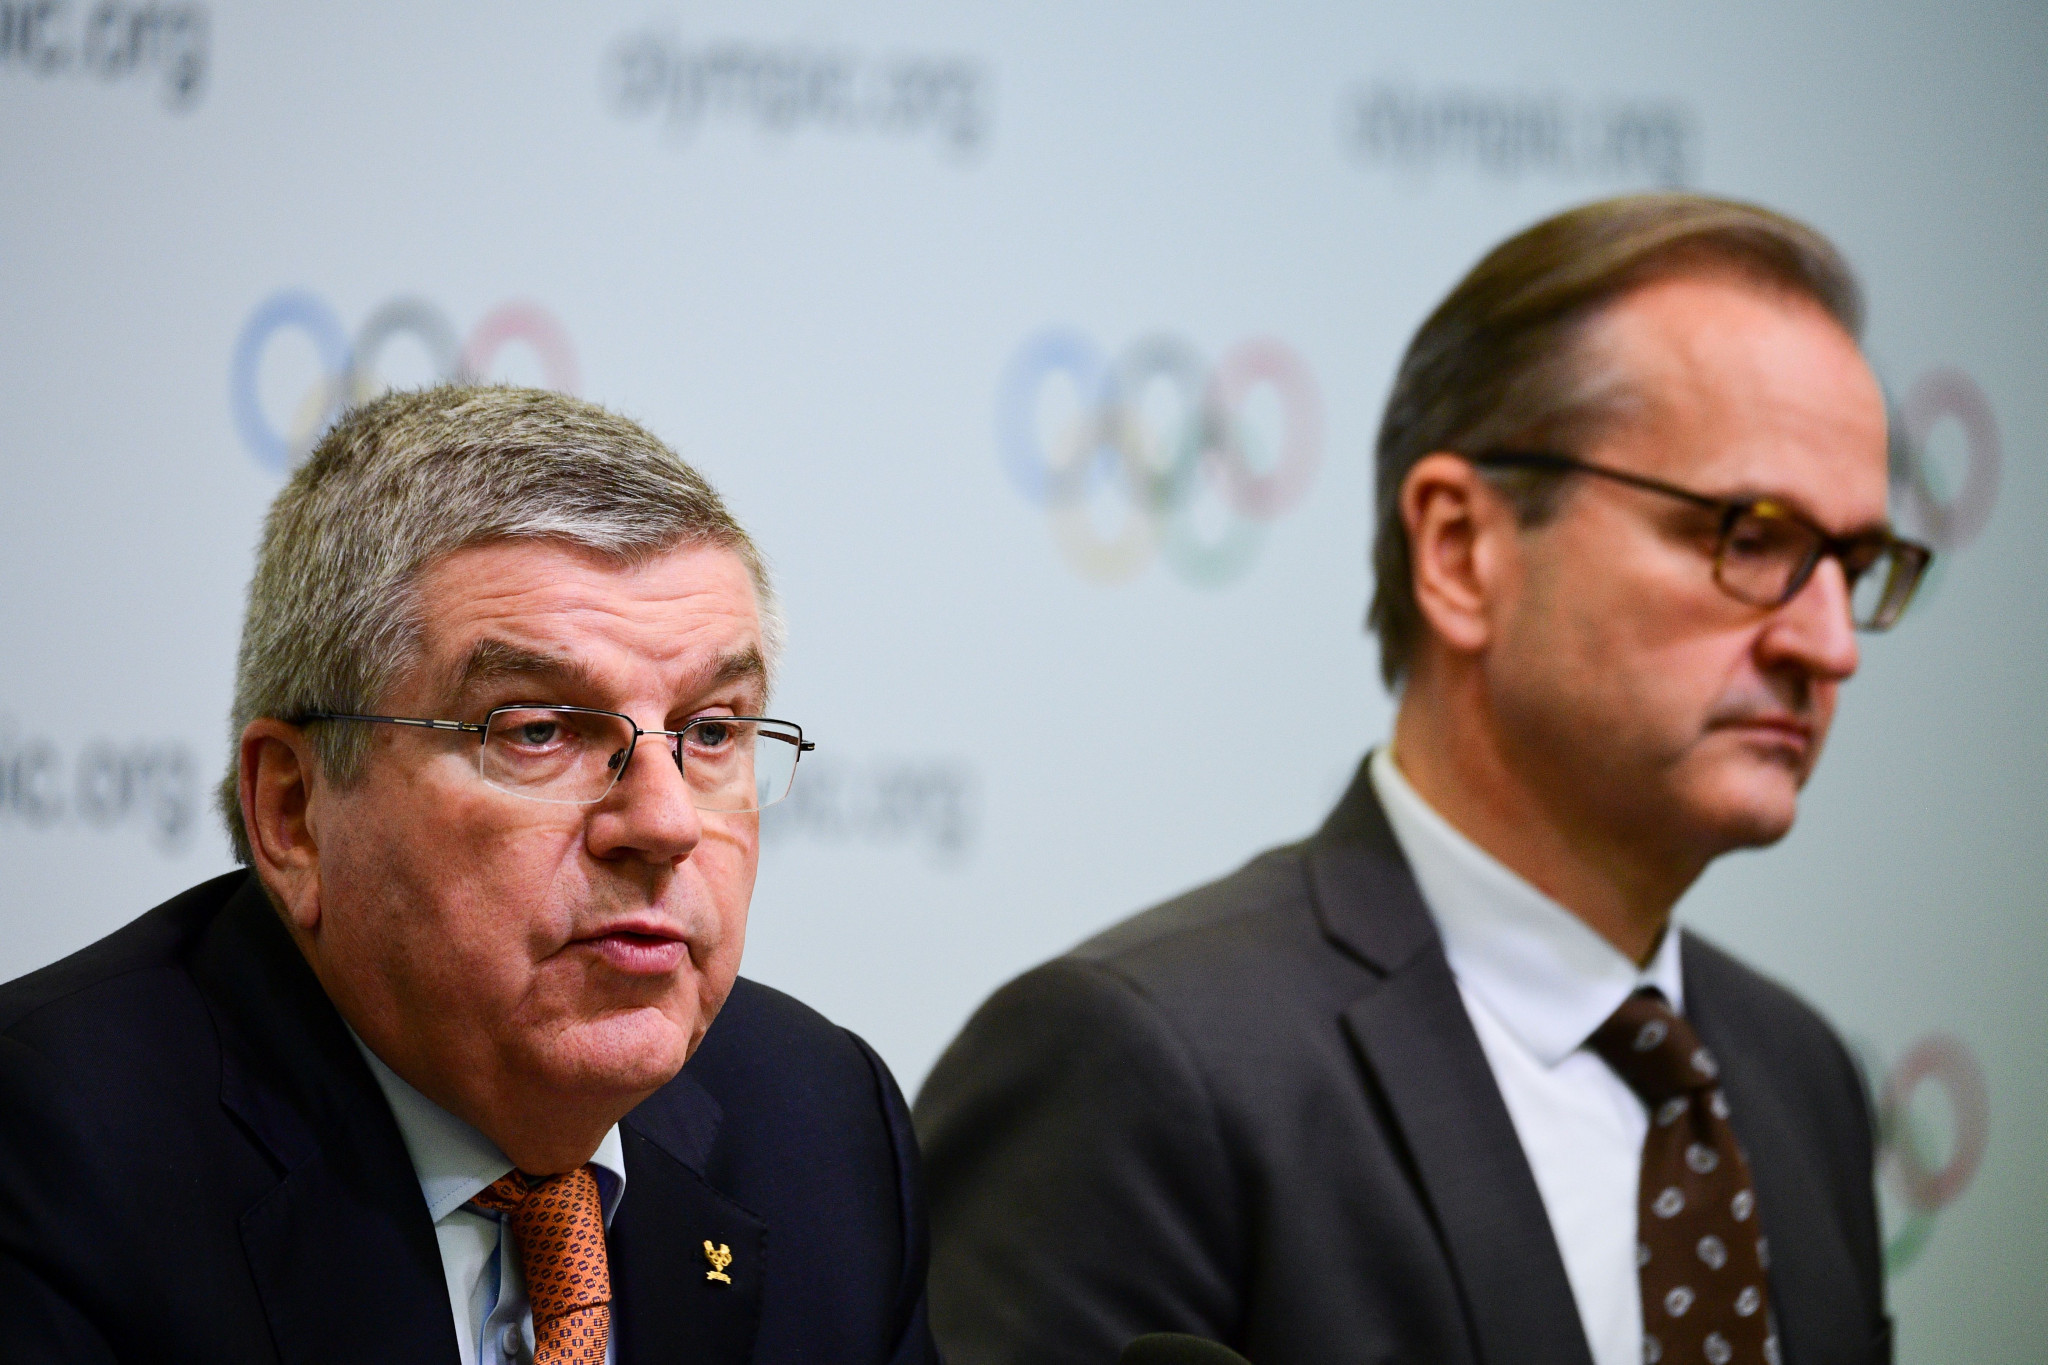 Bach reassures athletes Olympic boxing tournament will be held at Tokyo 2020